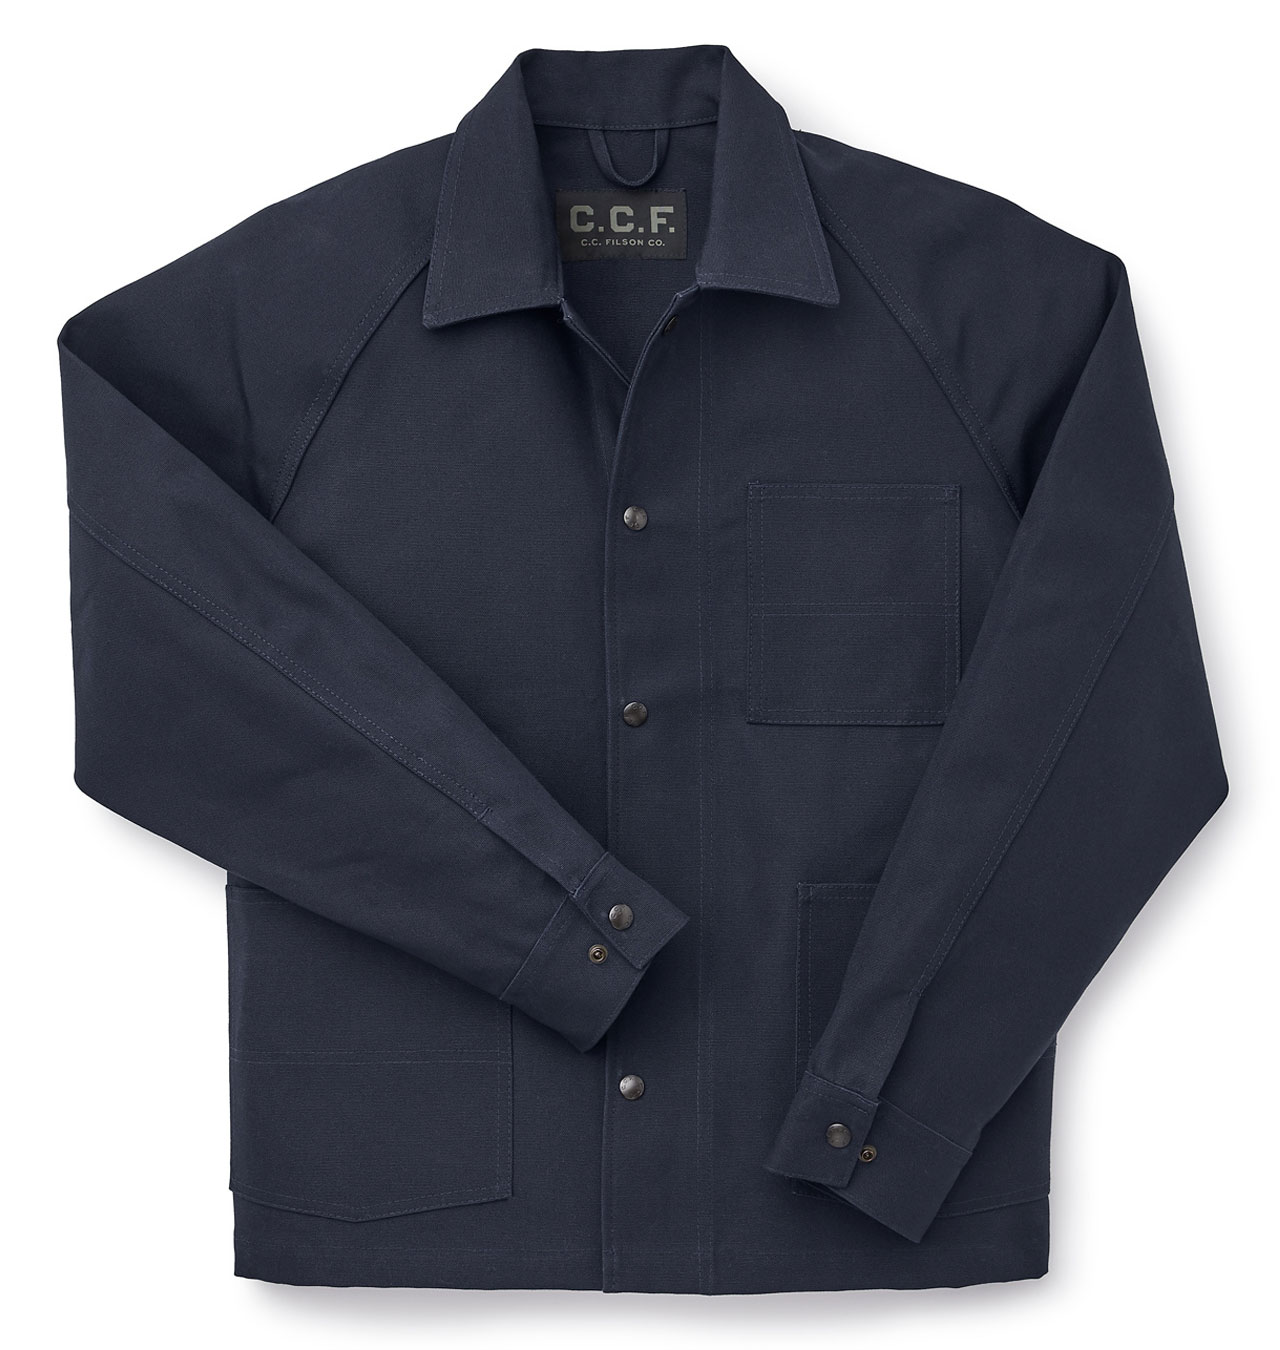 Filson - CCF Chore Coat - Dark Navy